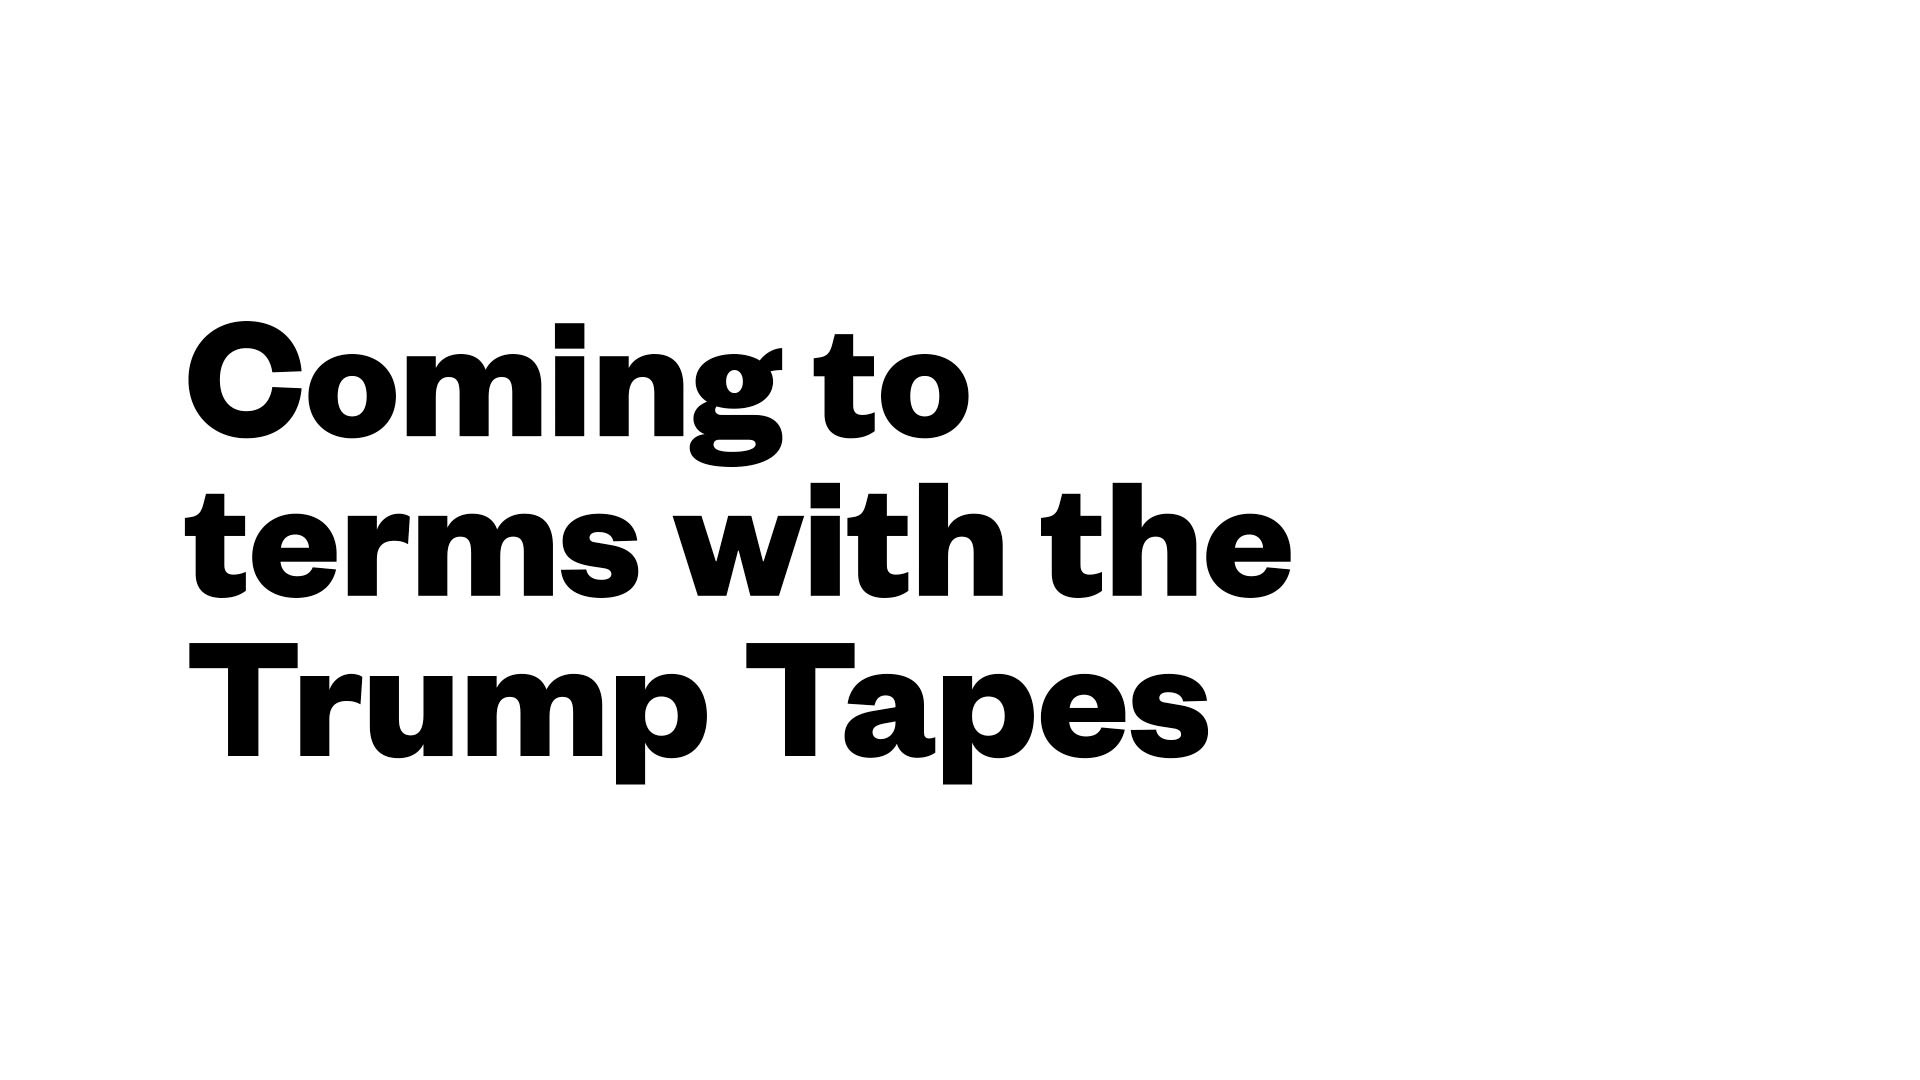 Coming to terms with the Trump Tapes